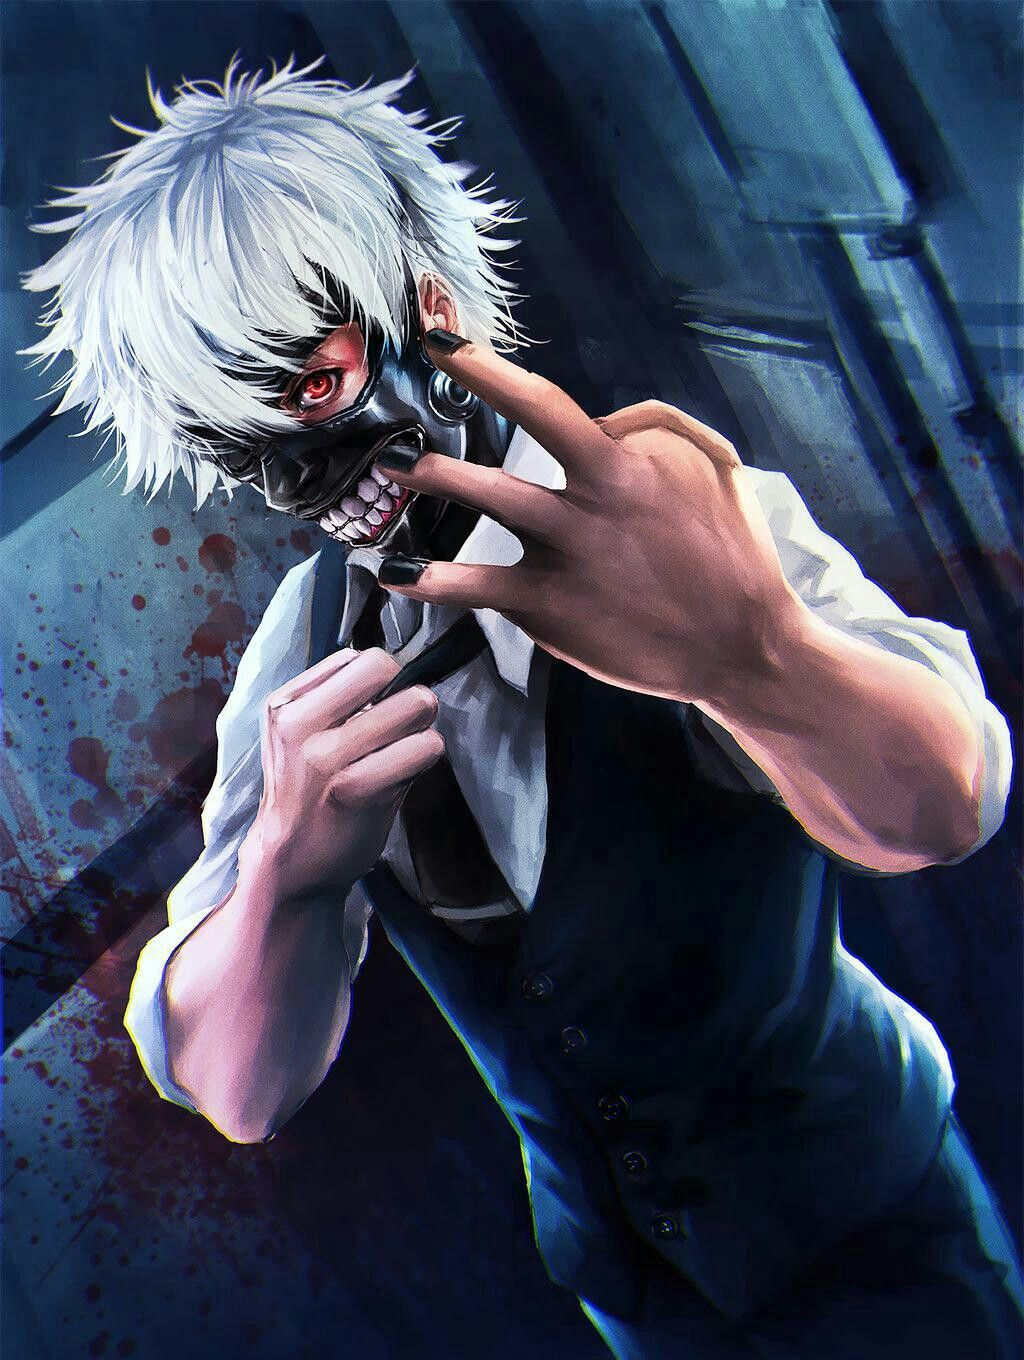 Middle Finger Anime : middle, finger, anime, Tokyo, Ghoul, Middle, Finger, Wallpapers, Wallpaper